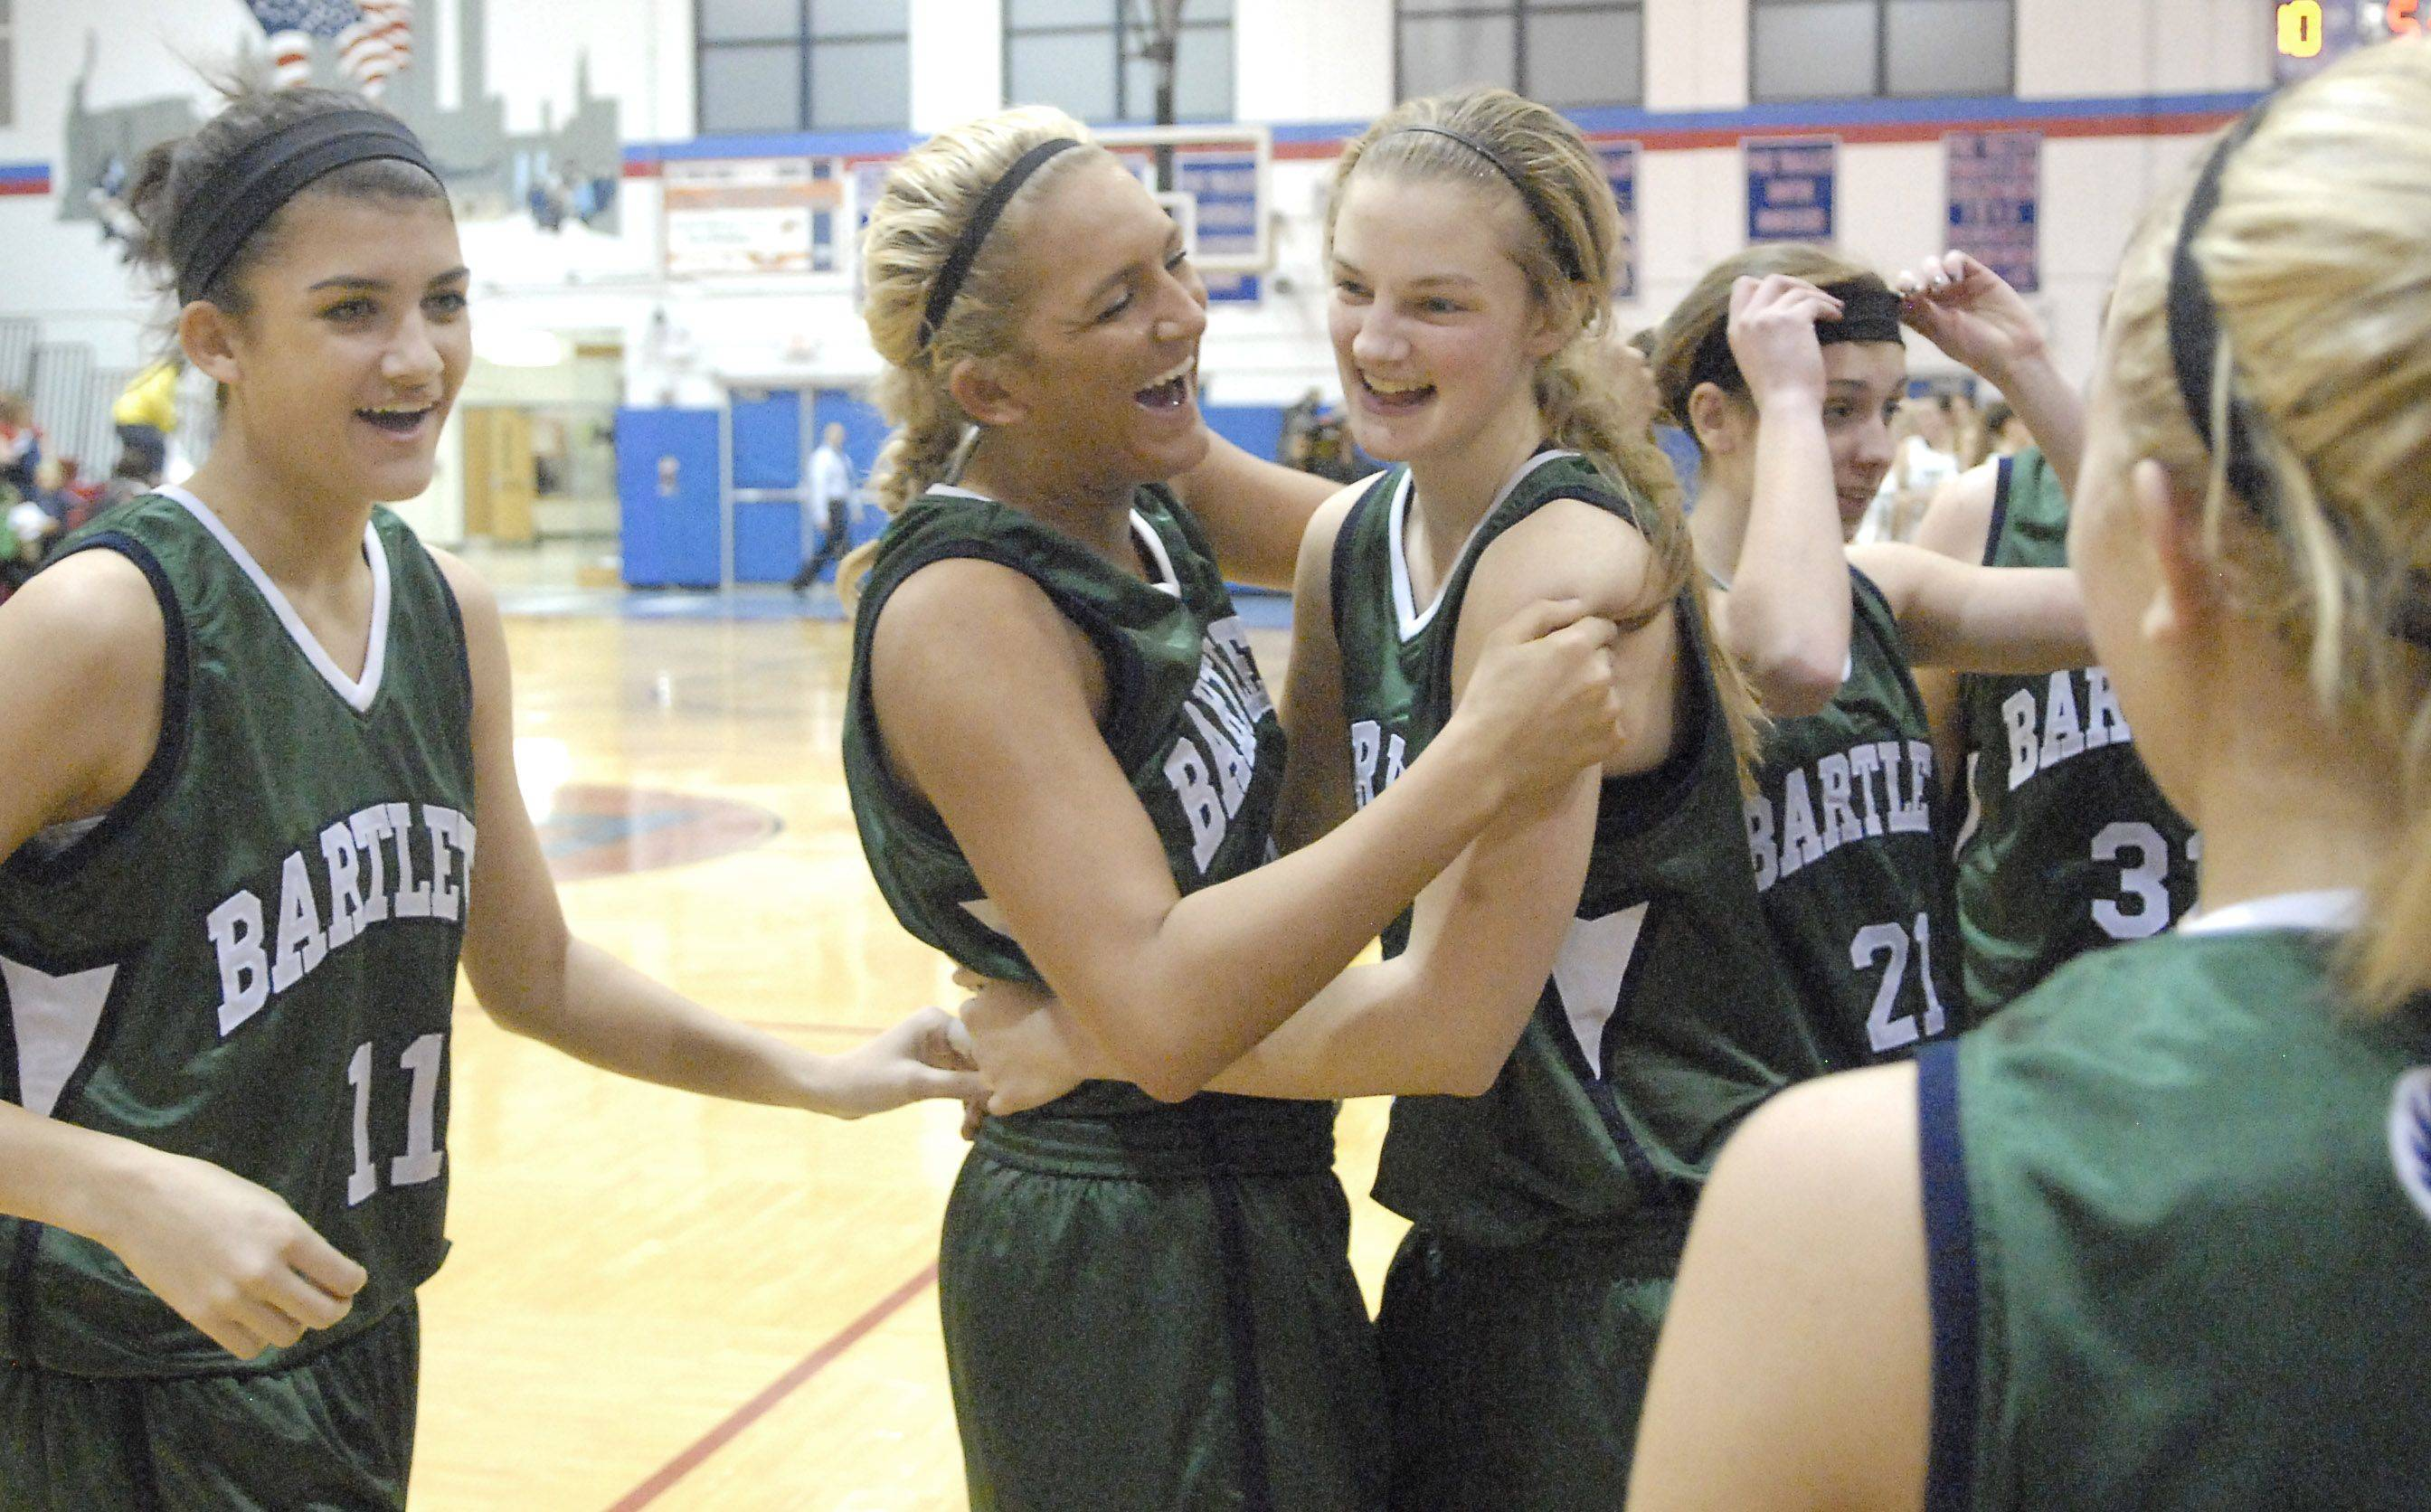 Bartlett's Haley Videckis and Kristin Conniff embrace after taking the championship game over New Trier at the Dundee-Crown classic on Thursday, December 29.